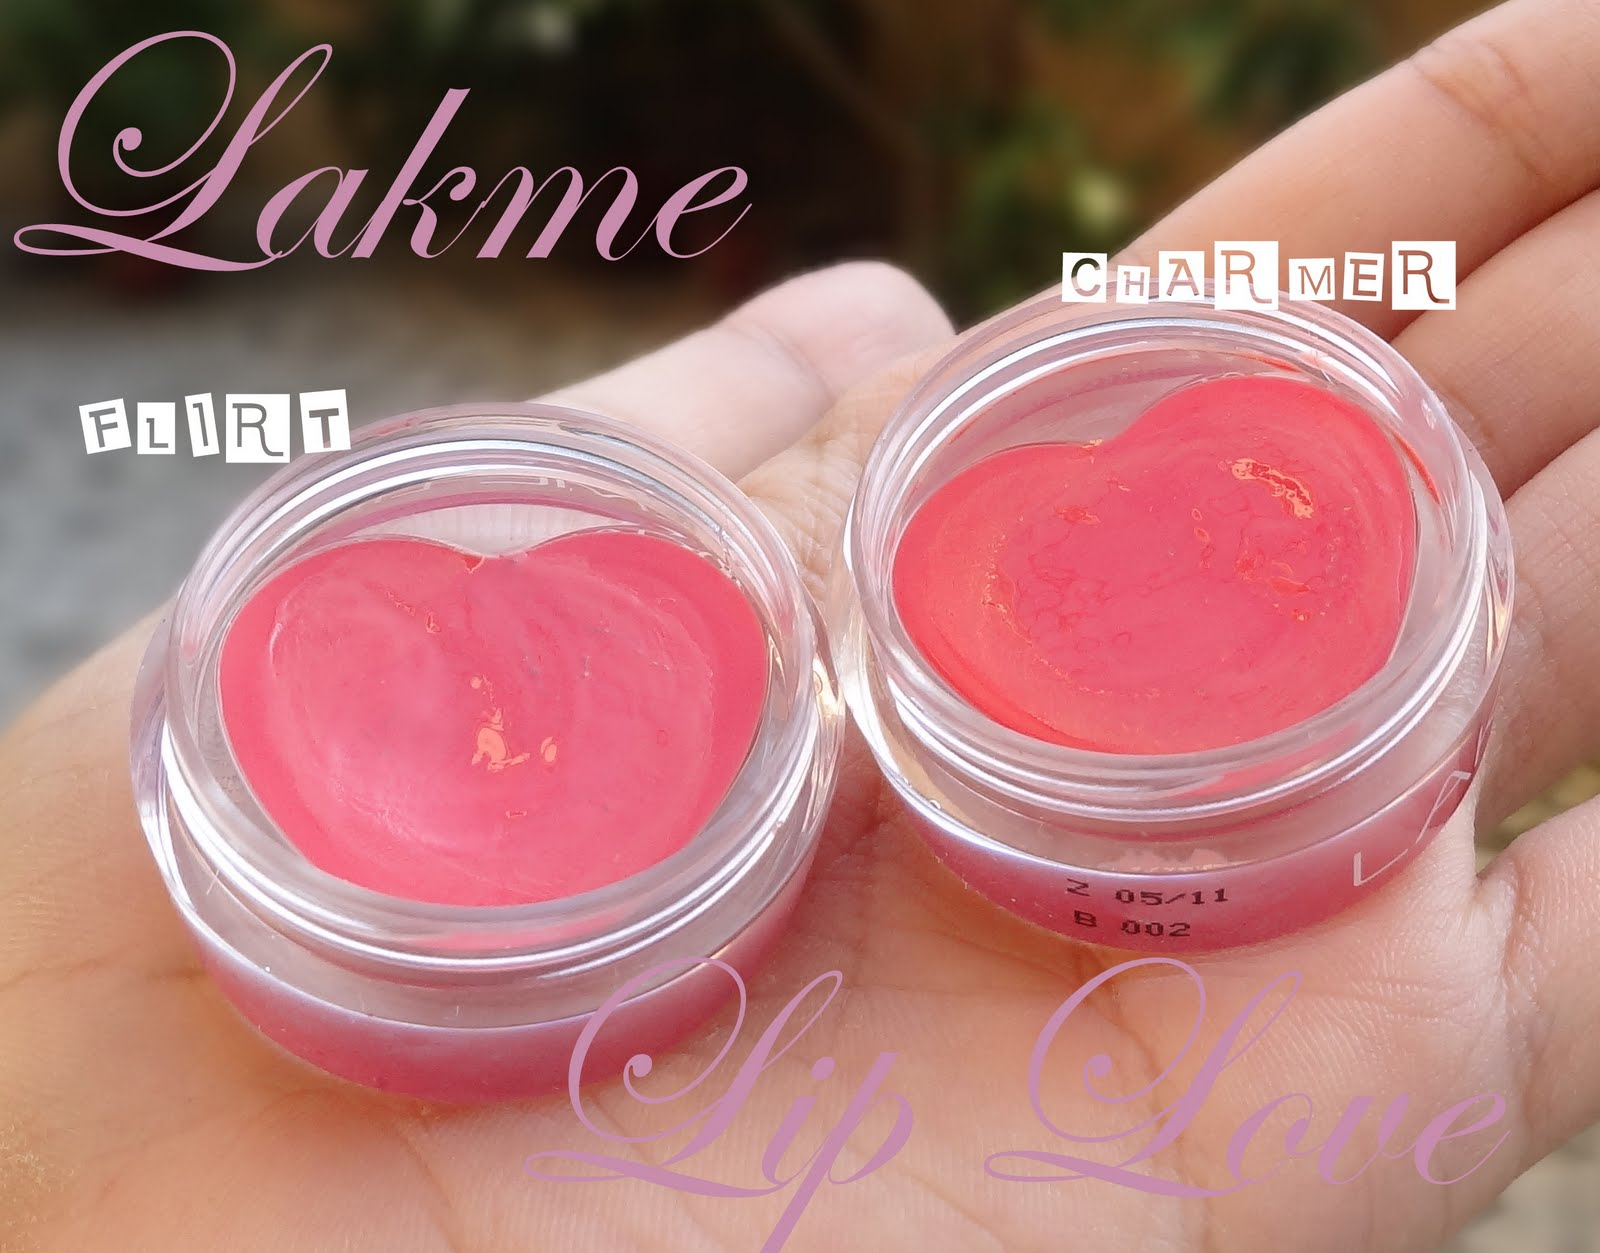 lakme lip love flirt lip conditioner Conditioner color treated curly lip gloss lip stain lip liner lip plumper flirt - eye kandy cosmetics ps i love you collection.